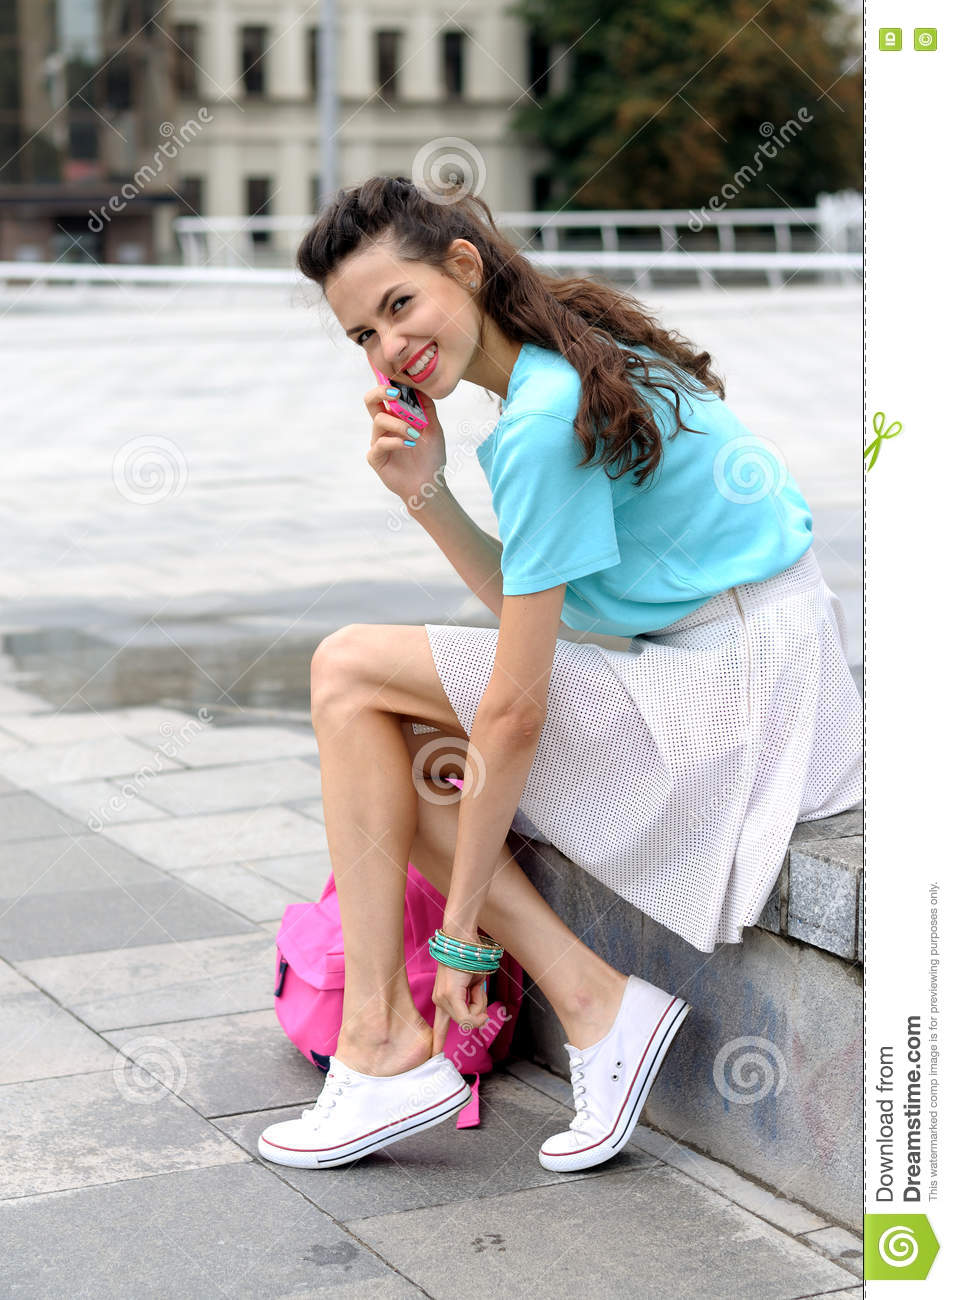 https://thumbs.dreamstime.com/z/woman-talking-cell-phone-putting-shoes-sitting-stairs-outdoors-76559685.jpg